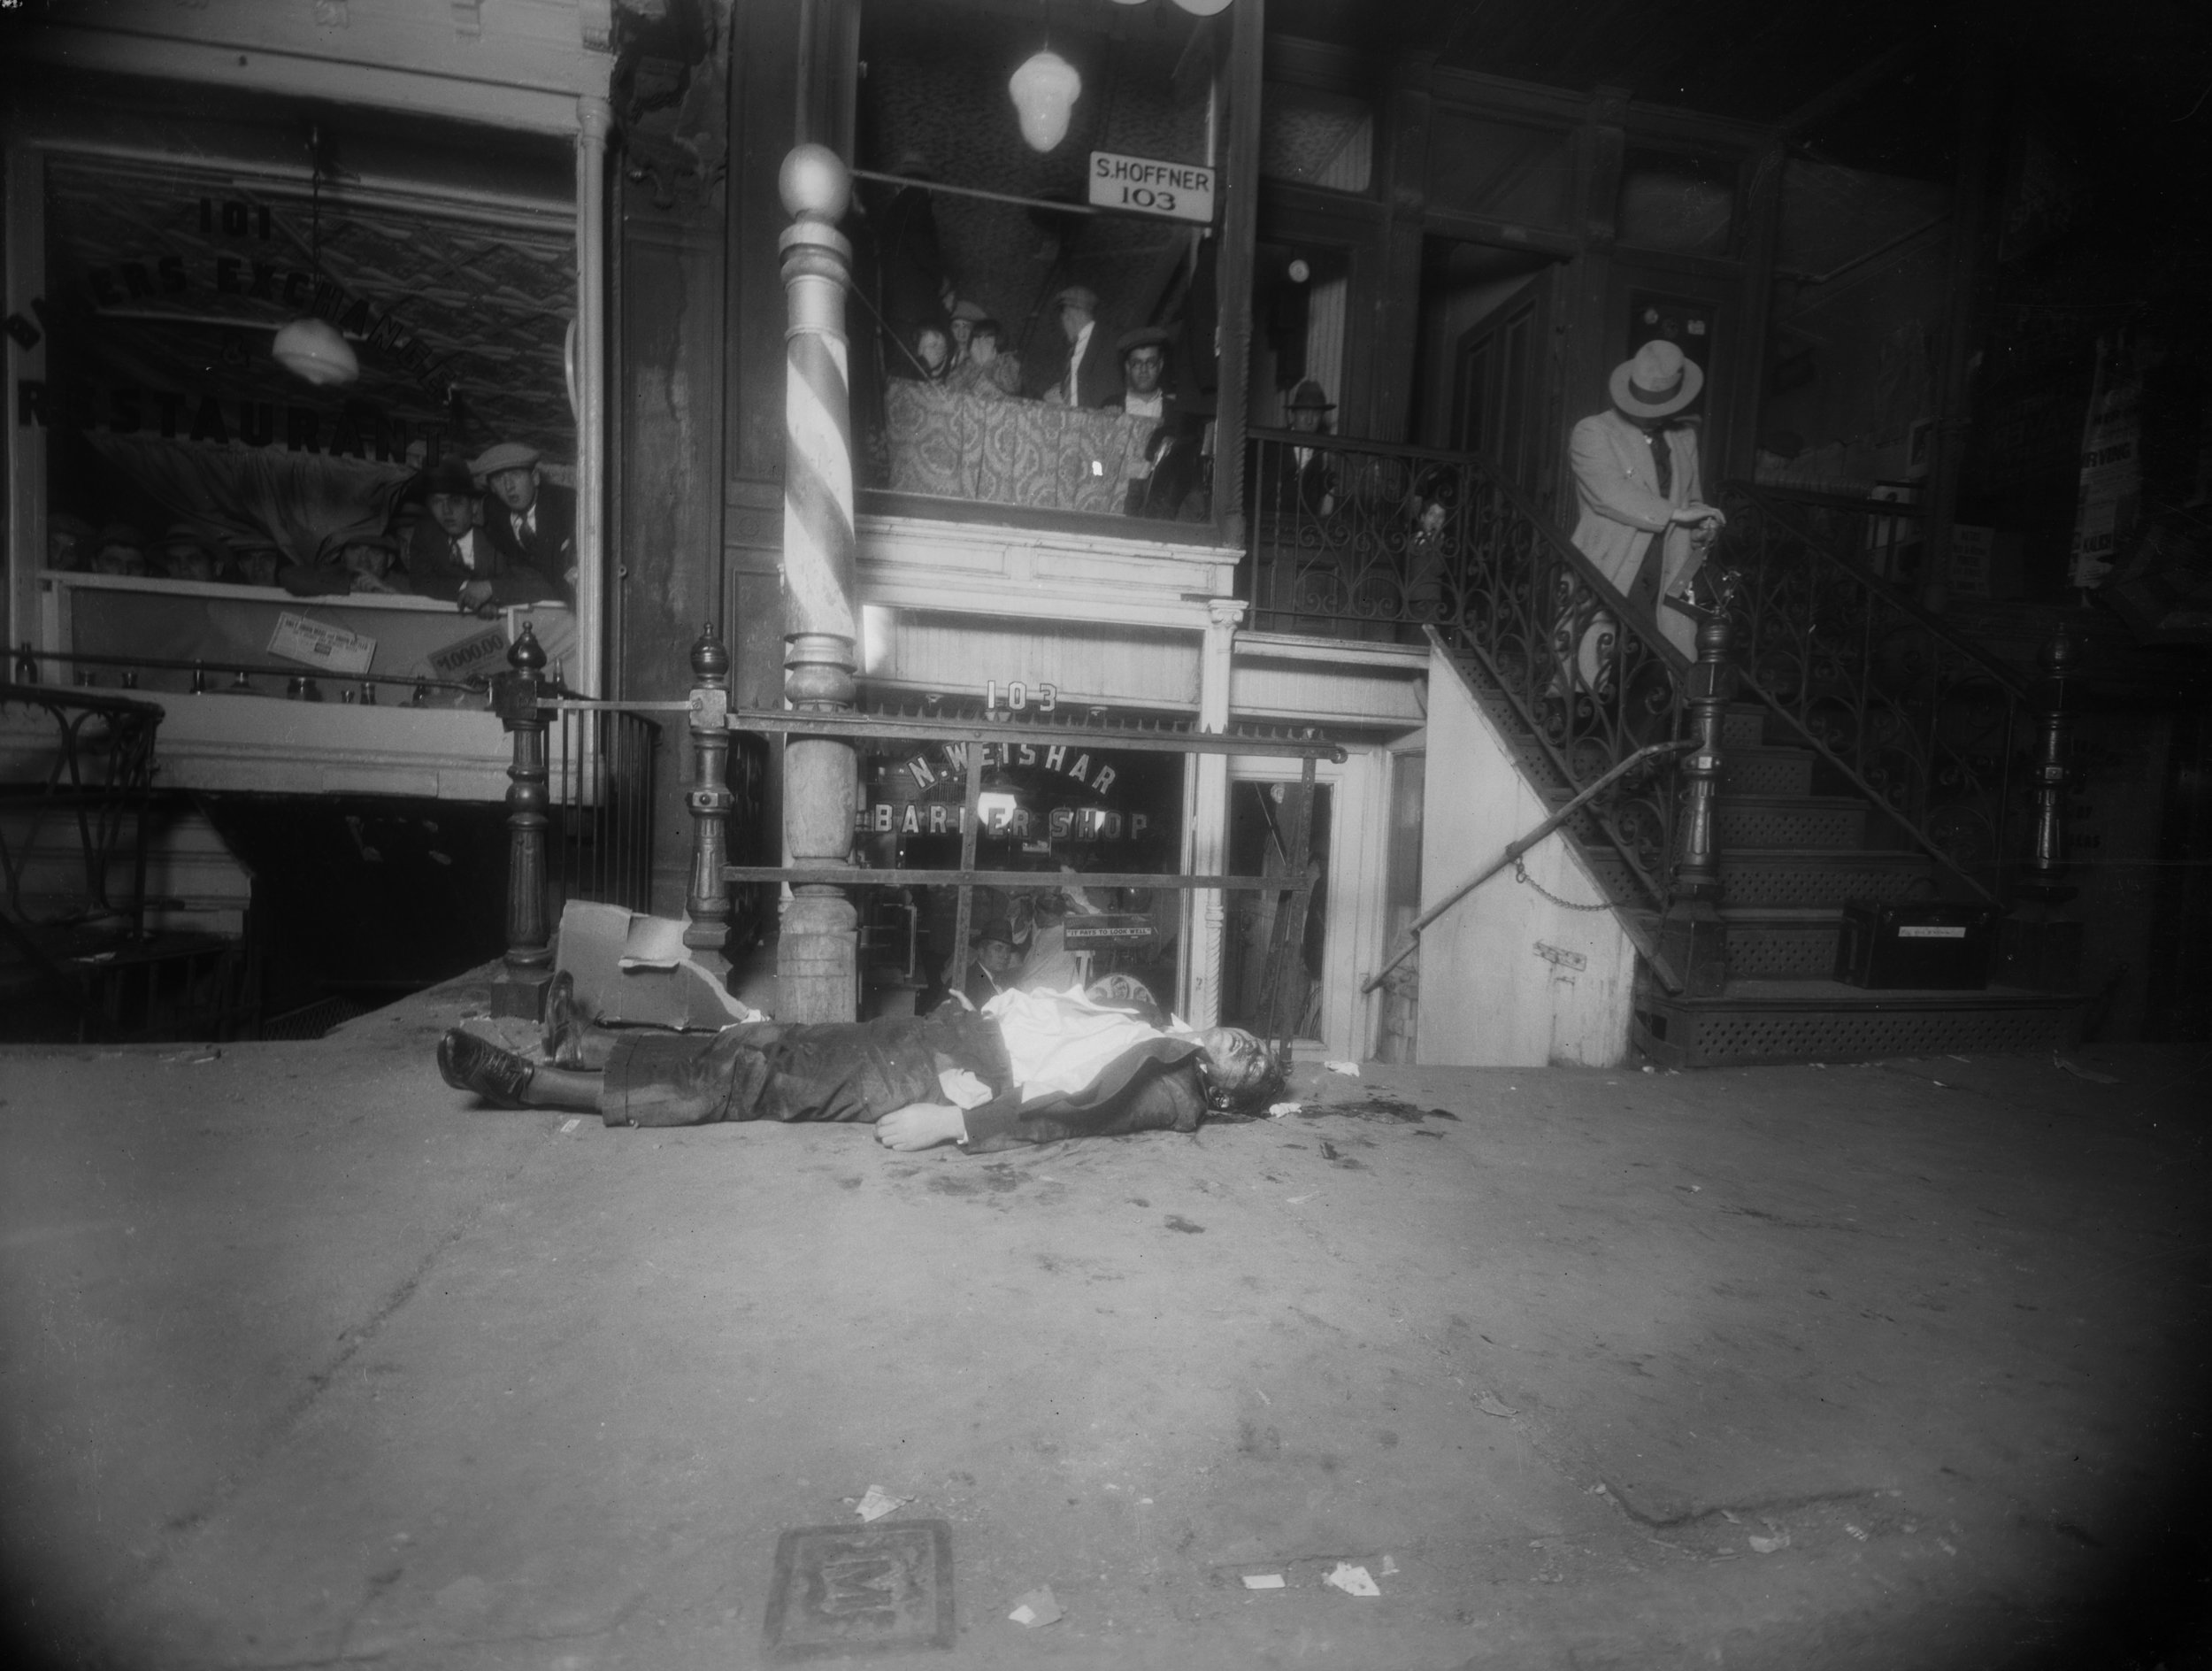 NYPD 9348b: Photo of body and scene where Jacob Orgen, alias Little Augie, was shot and killed in front of 103 Norfolk St., Manhattan while in the company of Jack Diamond, October 15, 1927. George B. Nolan, NYPD Collection, NYC Municipal Archives.